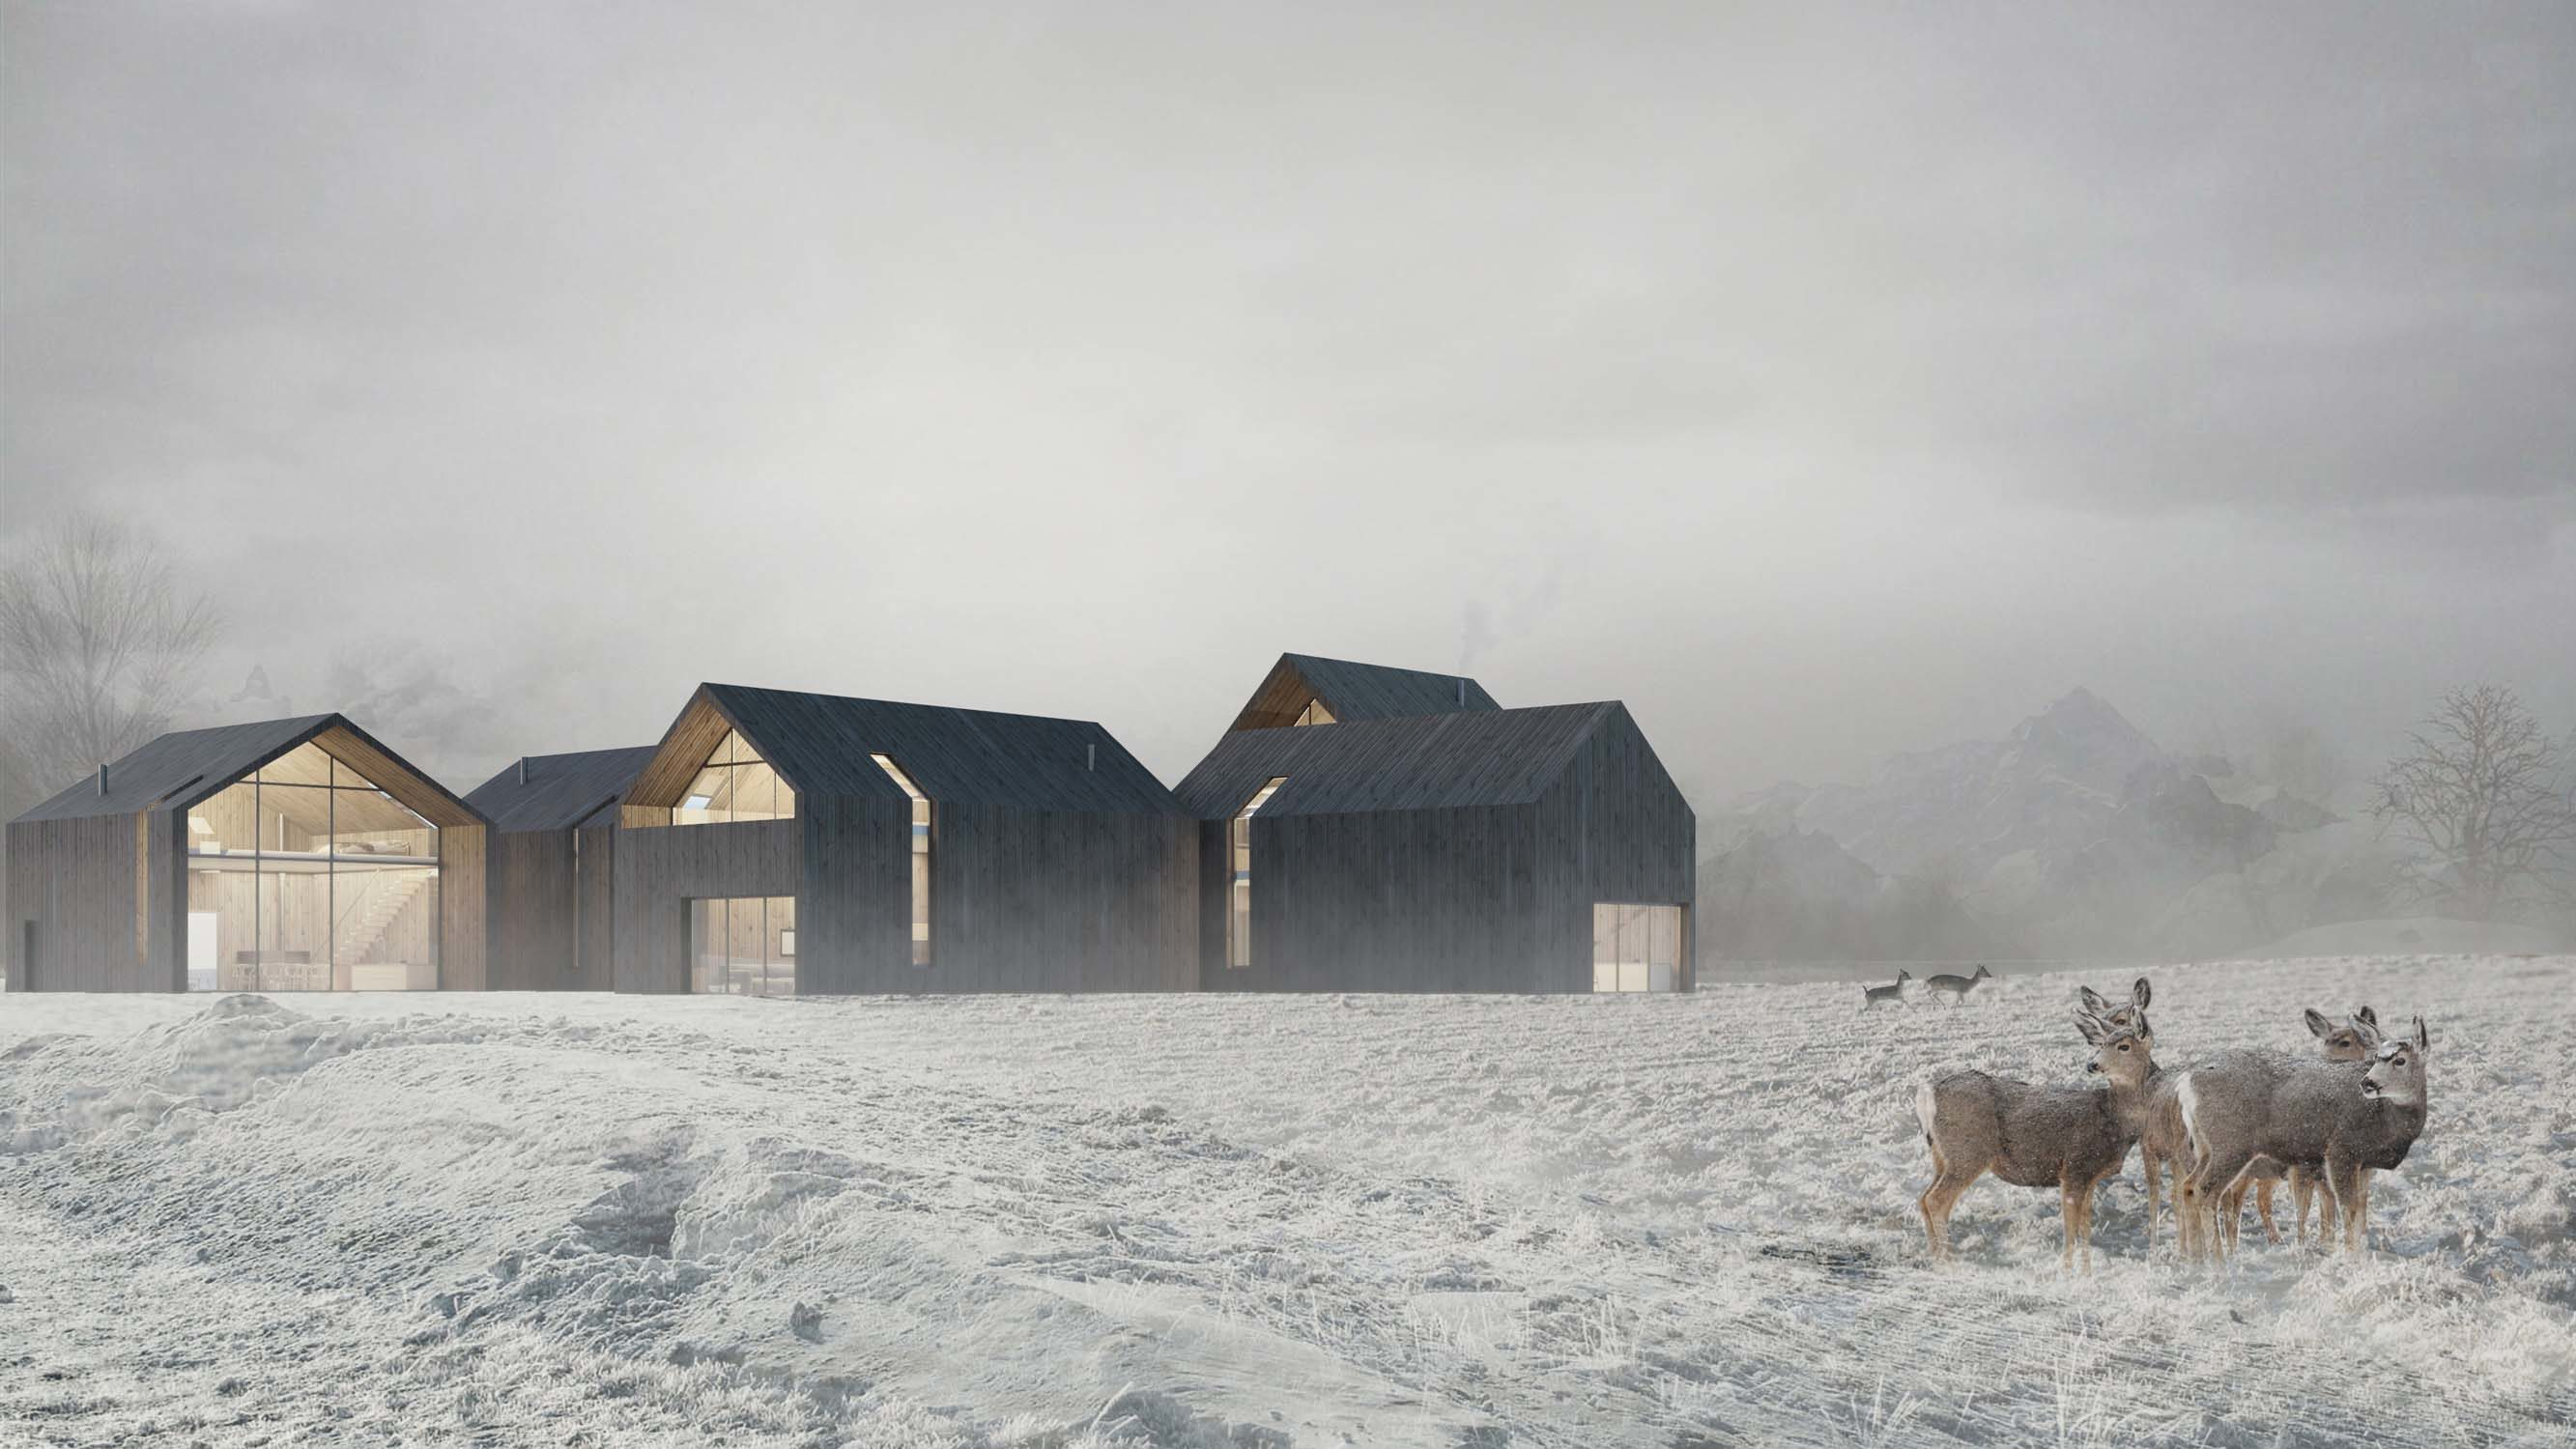 Norwegian cottage in Narvik – Level Creative studio, 2013